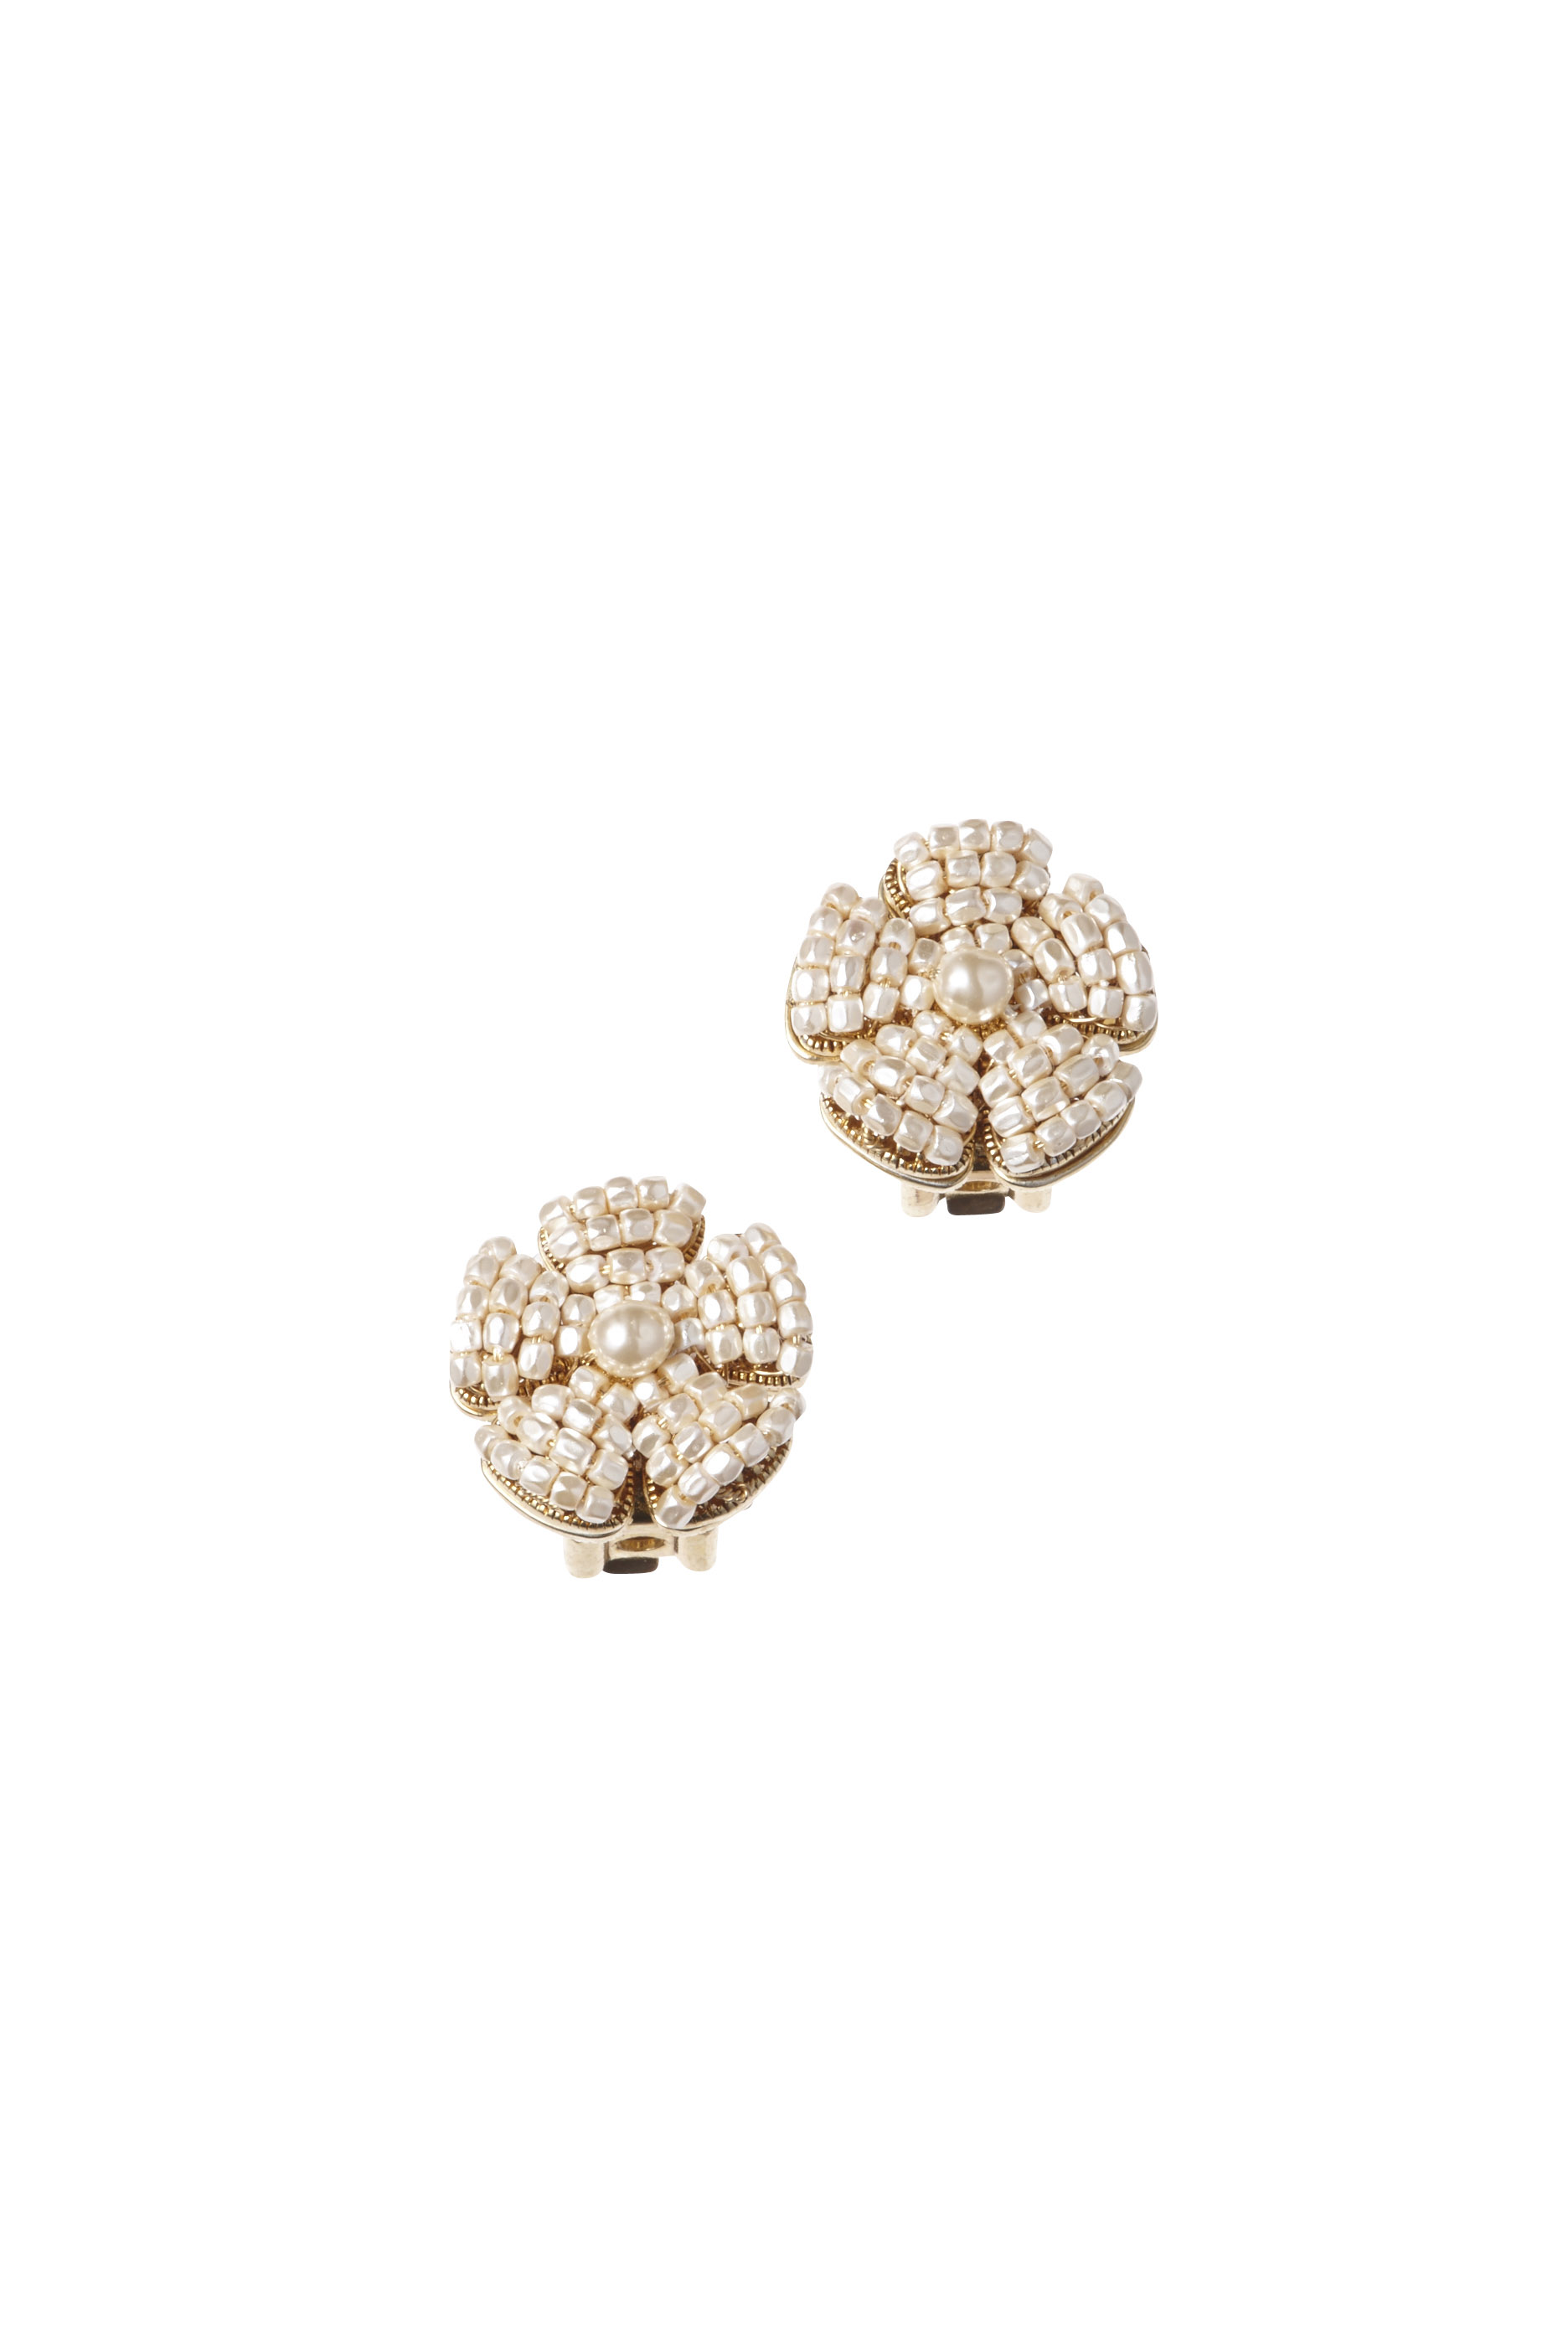 [RENTAL][BIB FLOWER PEARL Earrings]by MIRIAM HASKELL(参考価格¥32,400)